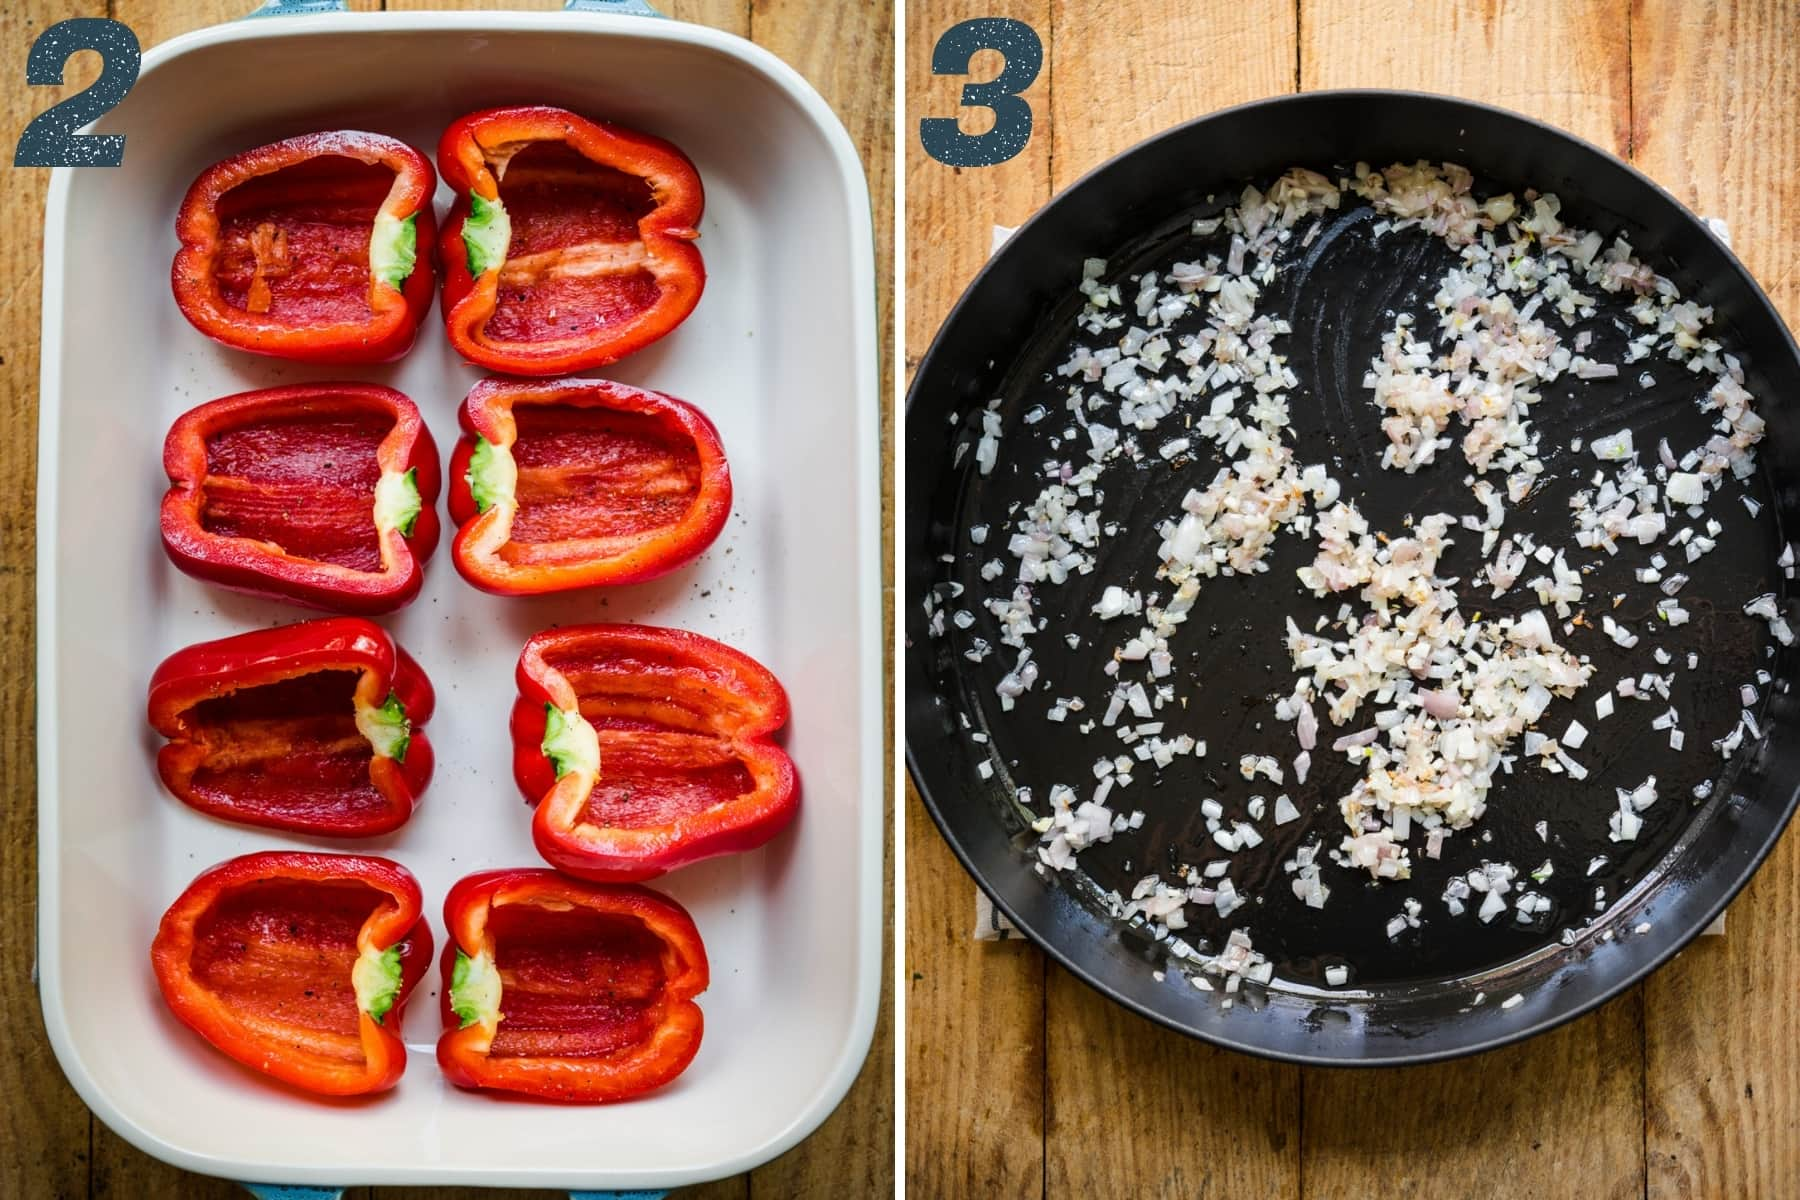 on the left: red bell peppers sliced in half in baking dish. on the right: sautéed shallots and garlic in large skillet.